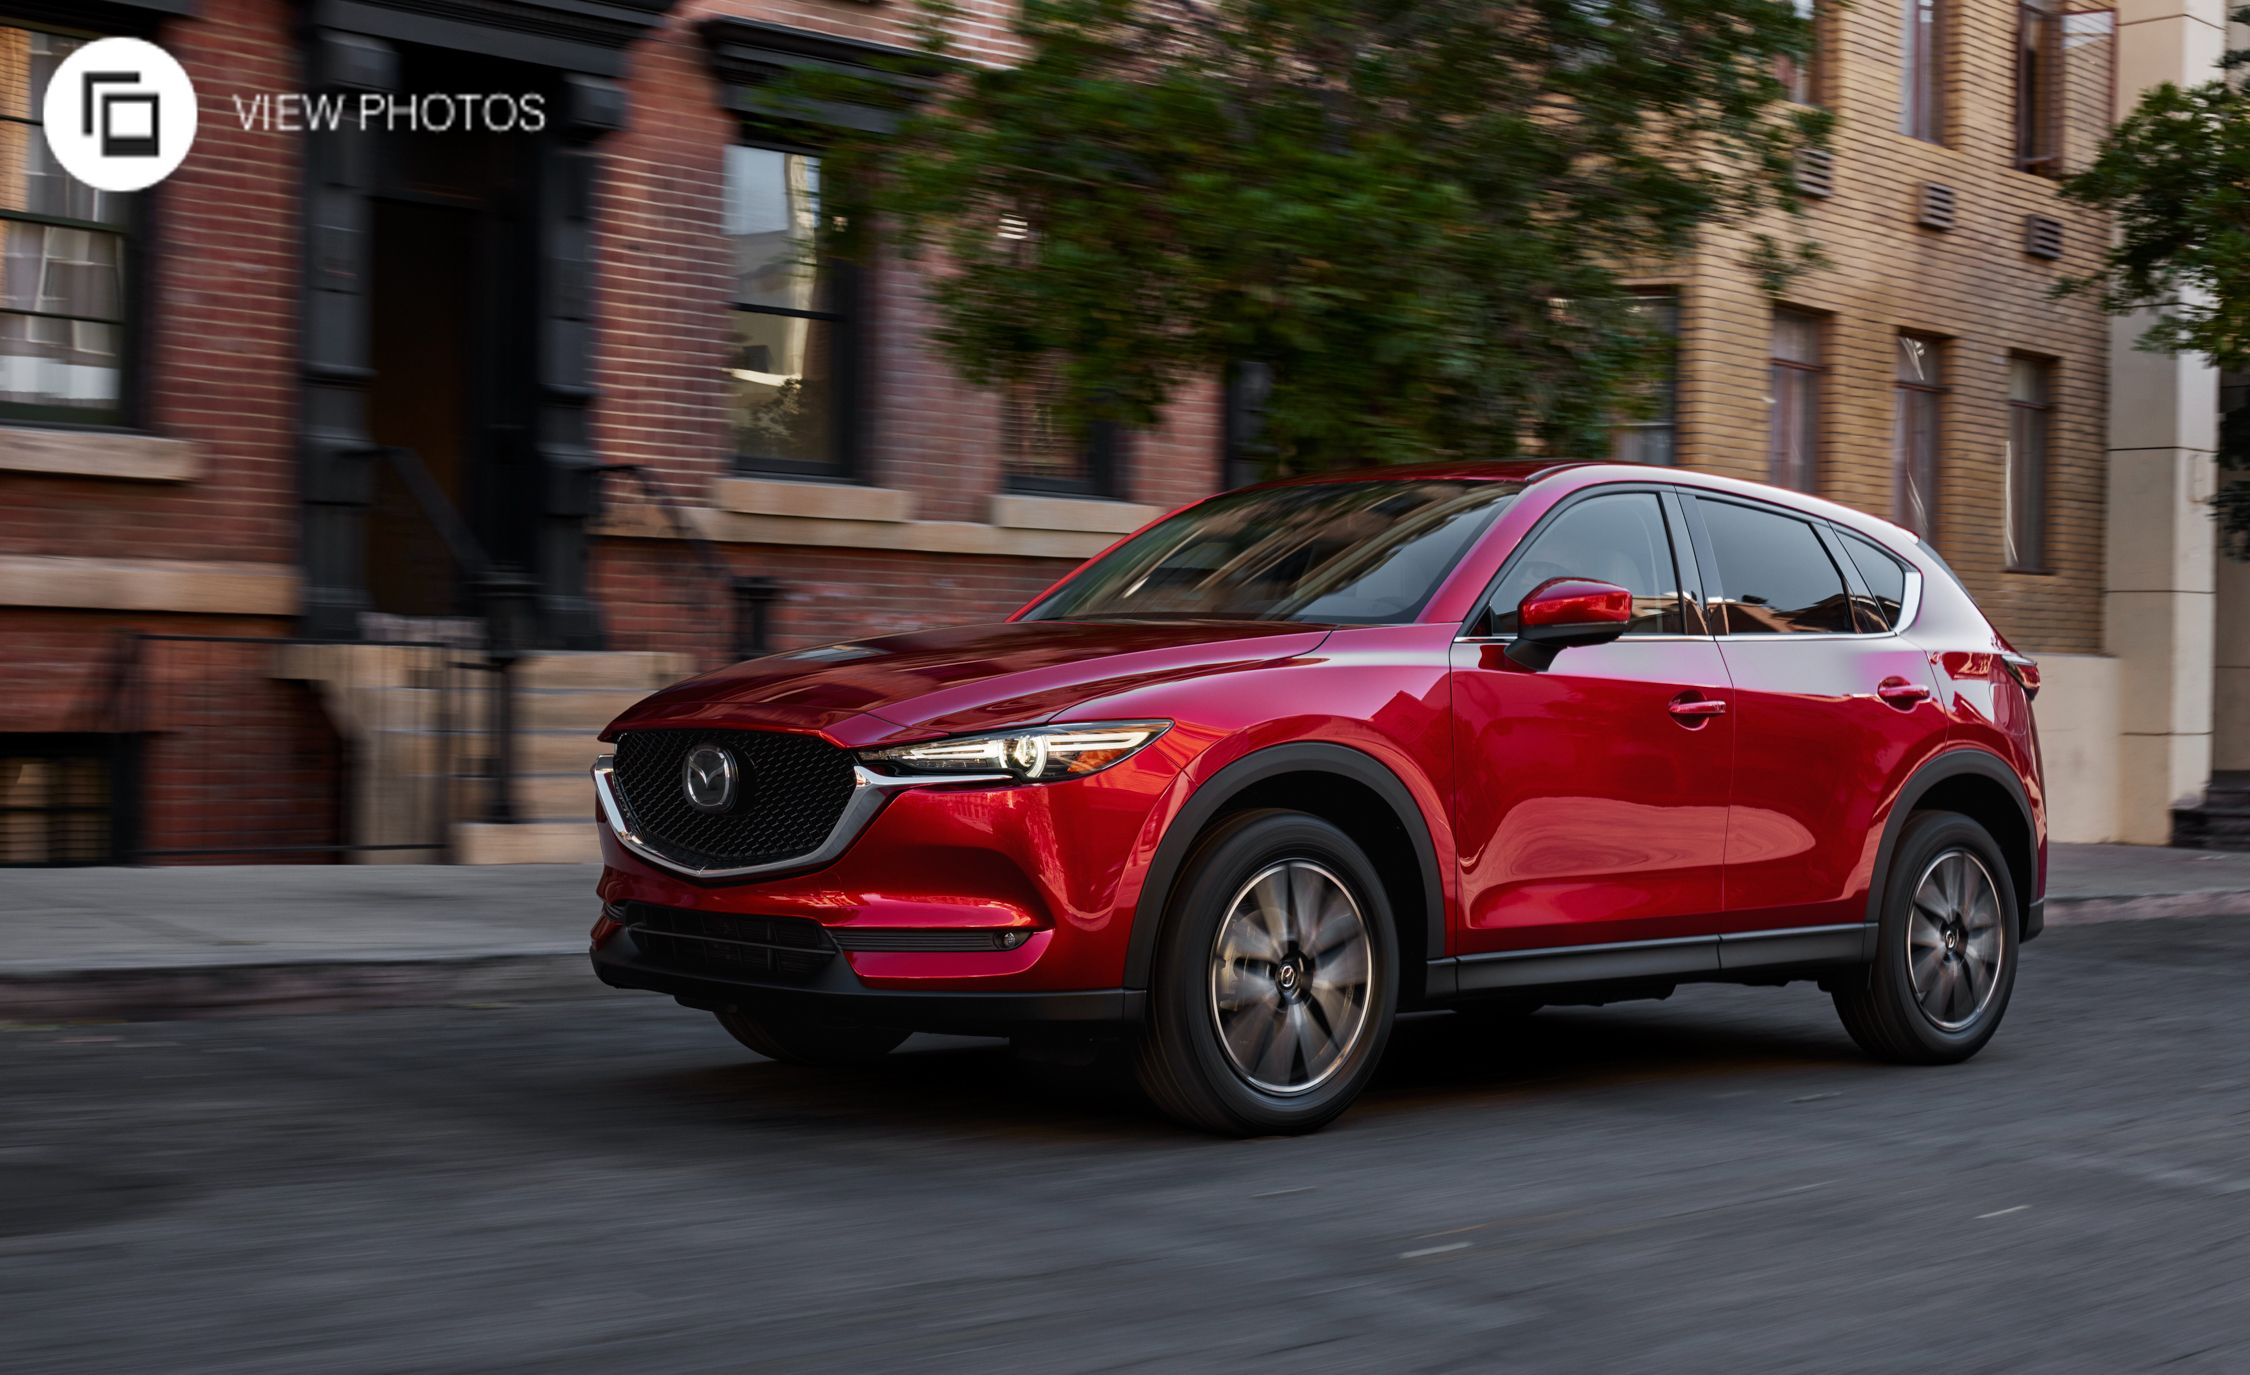 2019 Mazda Cx 5 Reviews Price Photos And Specs Car Driver